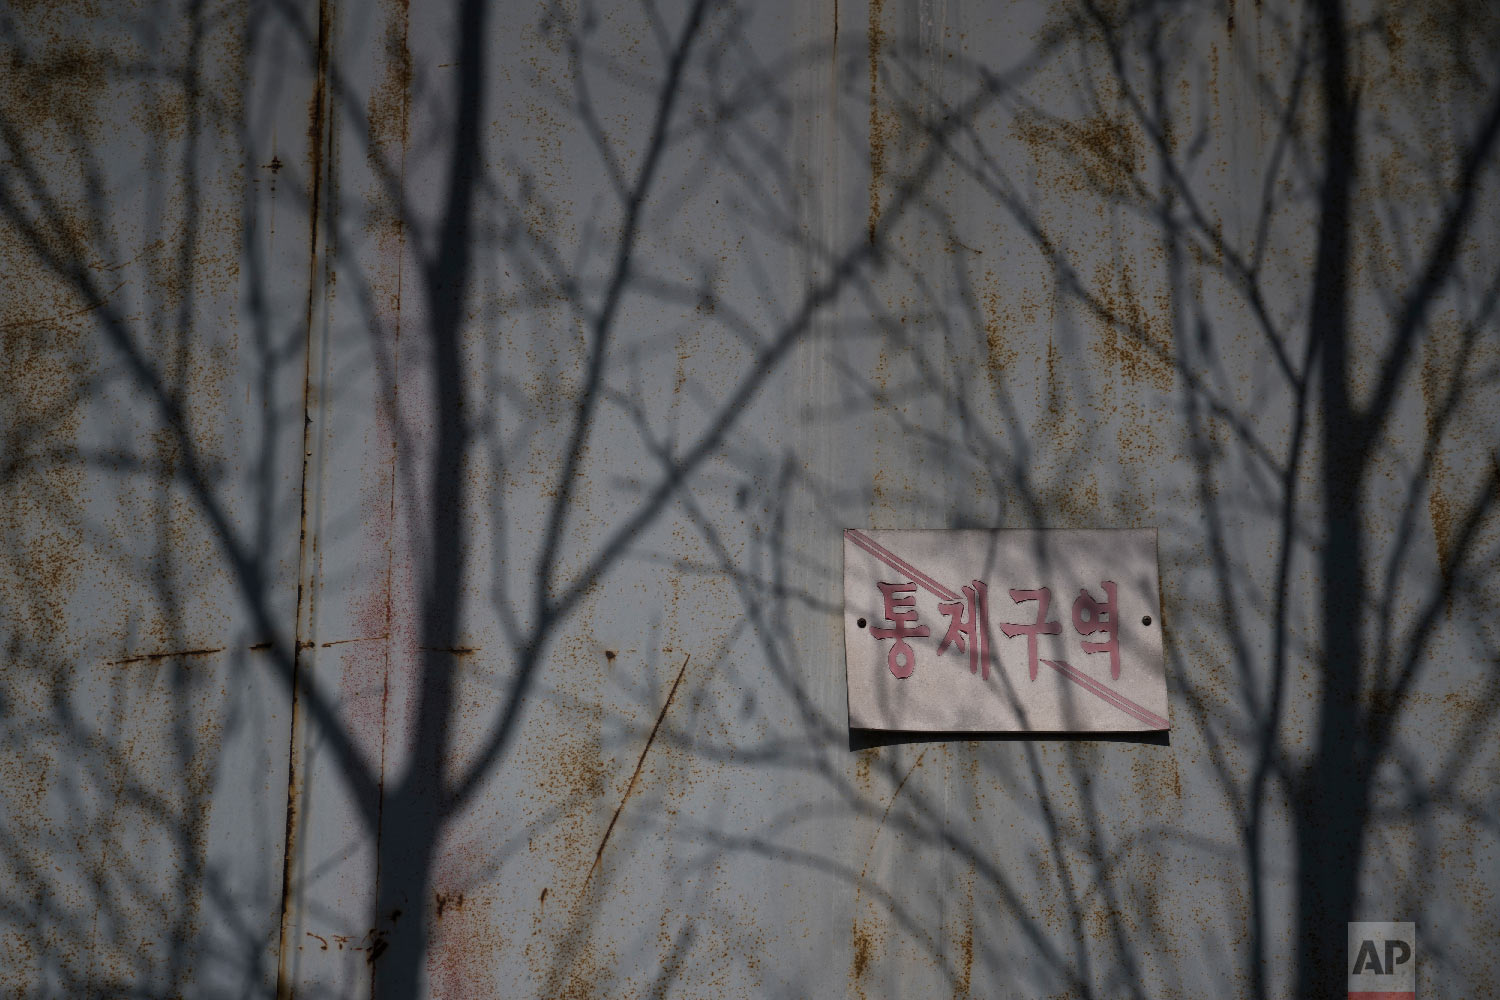 """A sign that reads in korean """"access controlled area"""" hangs on a wall in an abandoned coal mine in the town of Sabuk, Jeongseon county, South Korea, Thursday, Feb. 15, 2018. (AP Photo/Felipe Dana)"""